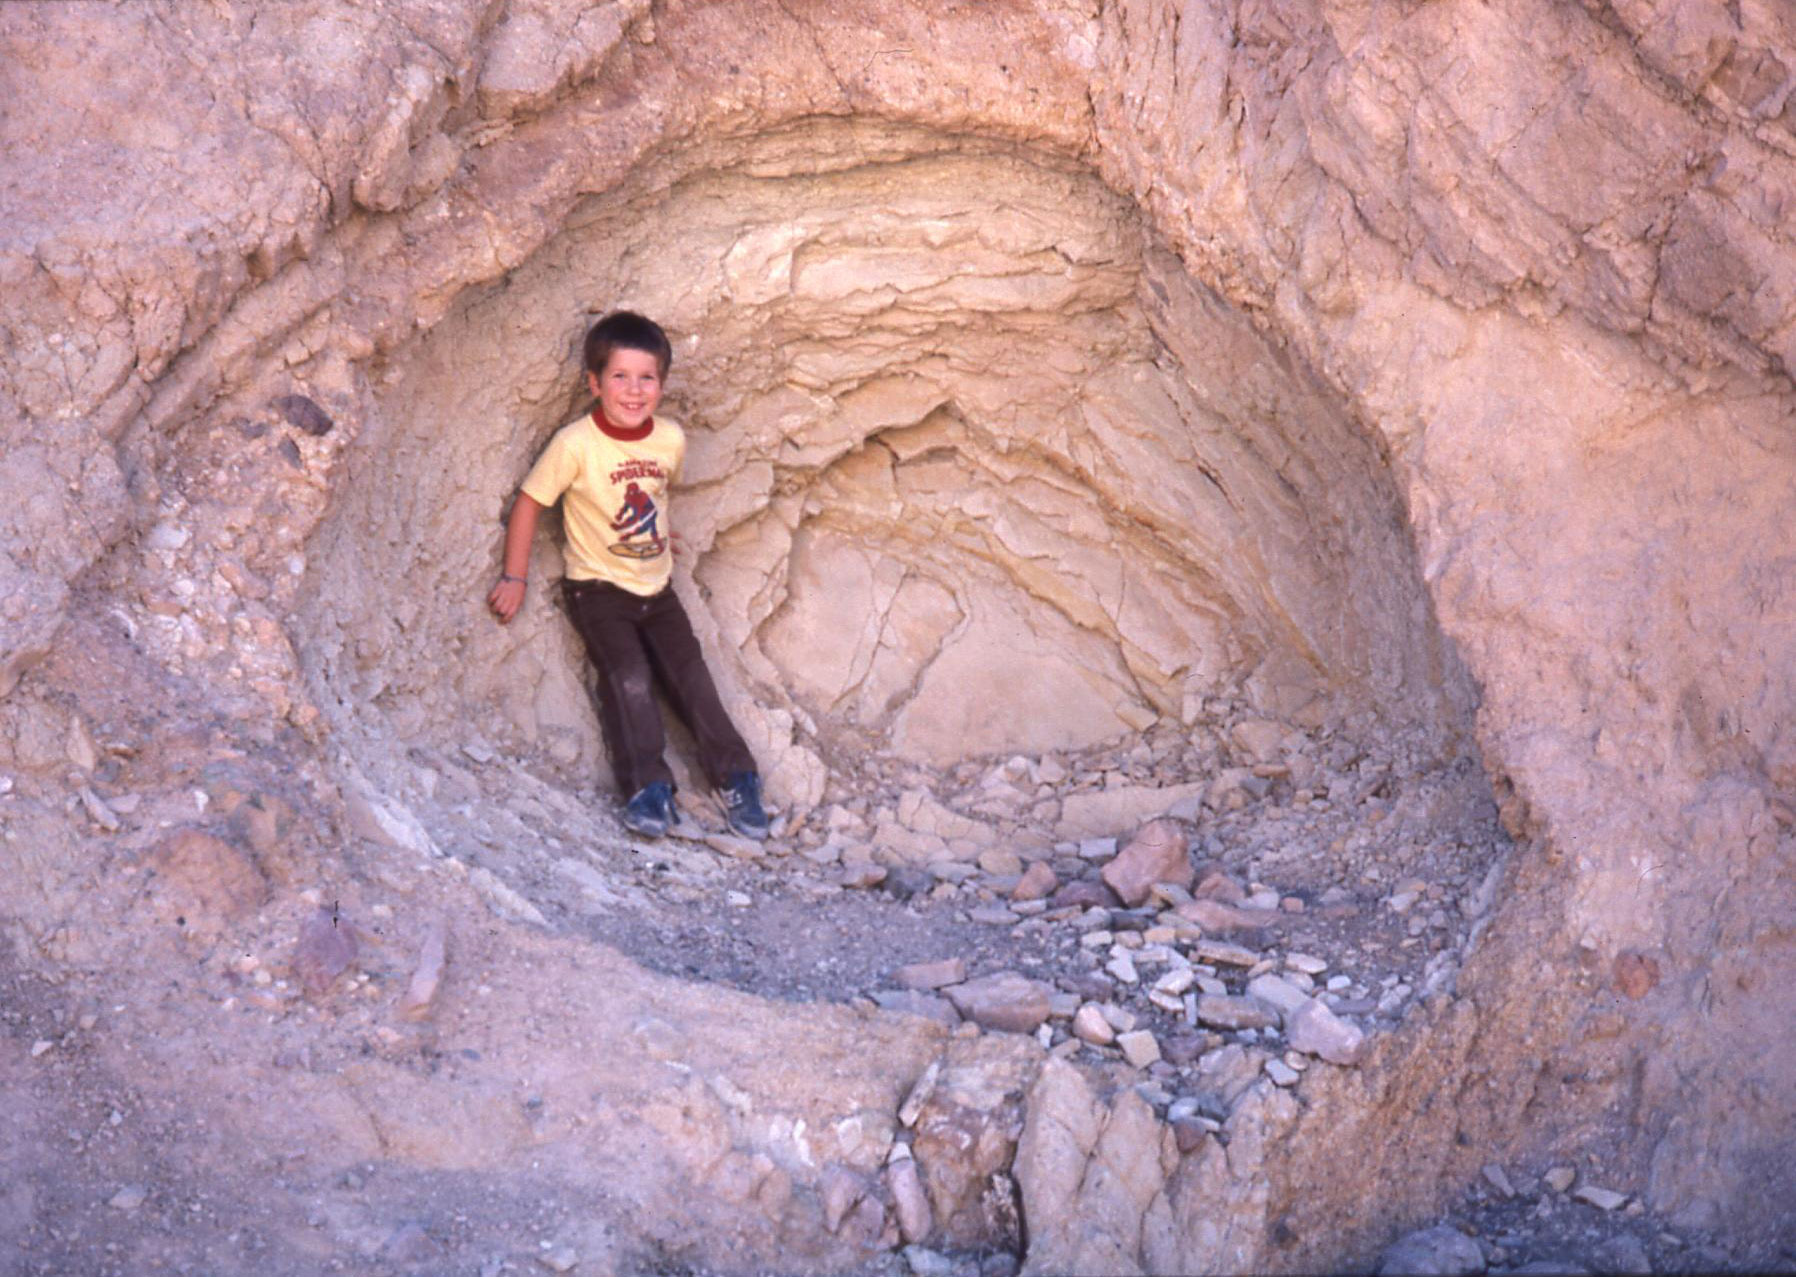 Caleb in Death Valley